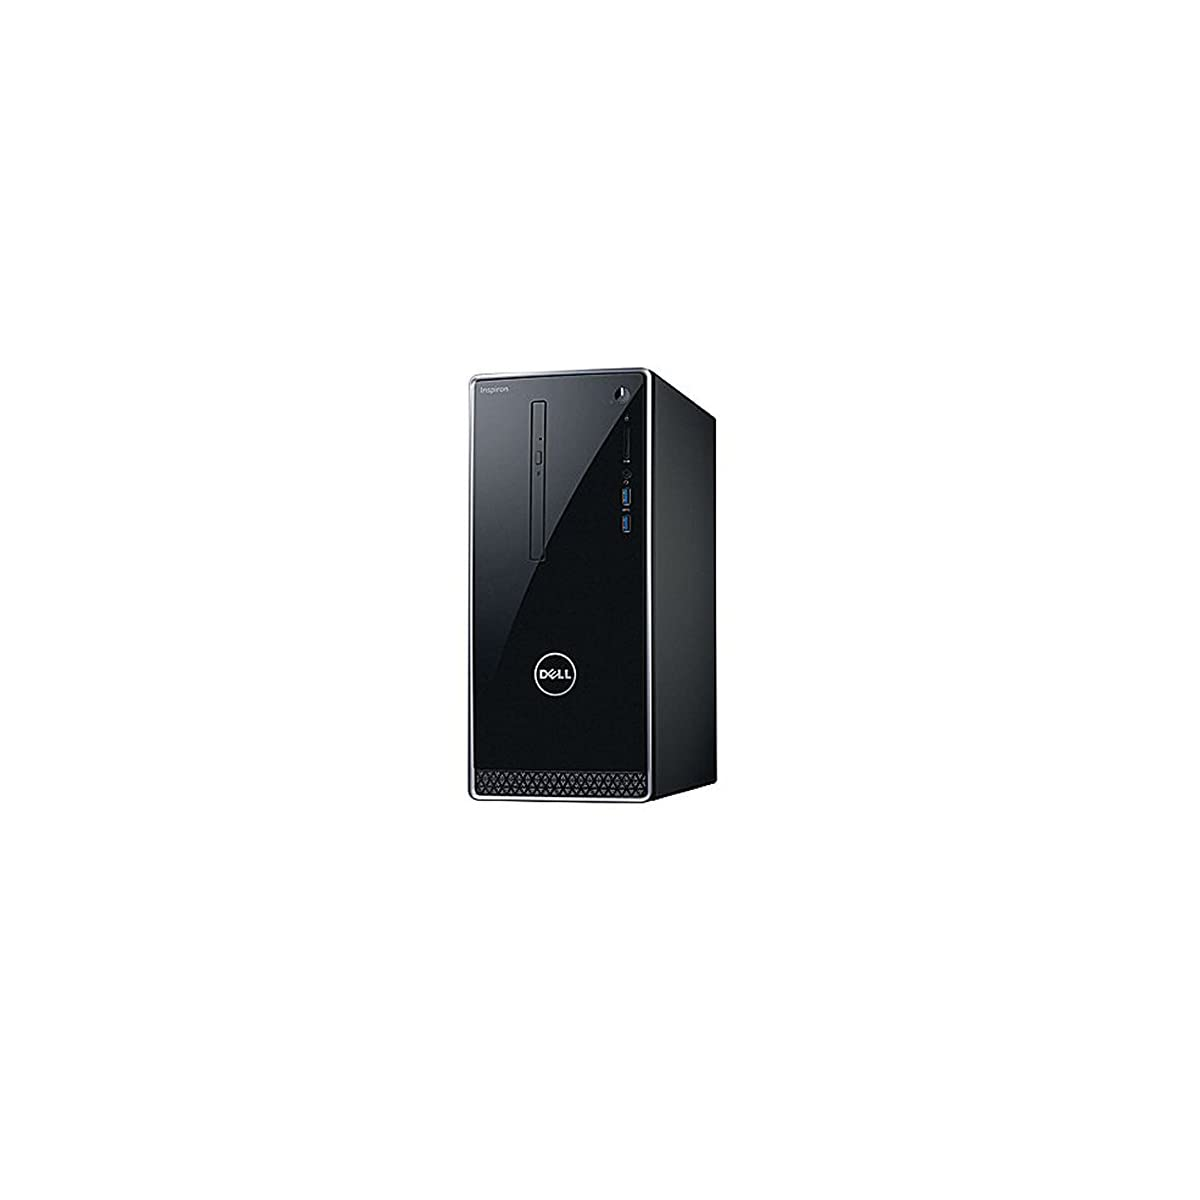 SaleProductsOffer - No.1 Best Online Store 41BsG2GV8kL 2018 Newest Dell Premium Business Flagship Desktop Tower with Keyboard&Mouse Intel Core i5-7400 Processor 12GB DDR4 RAM 1TB 7200RPM HDD Intel 630 Graphics DVD-RW HDMI VGA Bluetooth Windows 10-Black